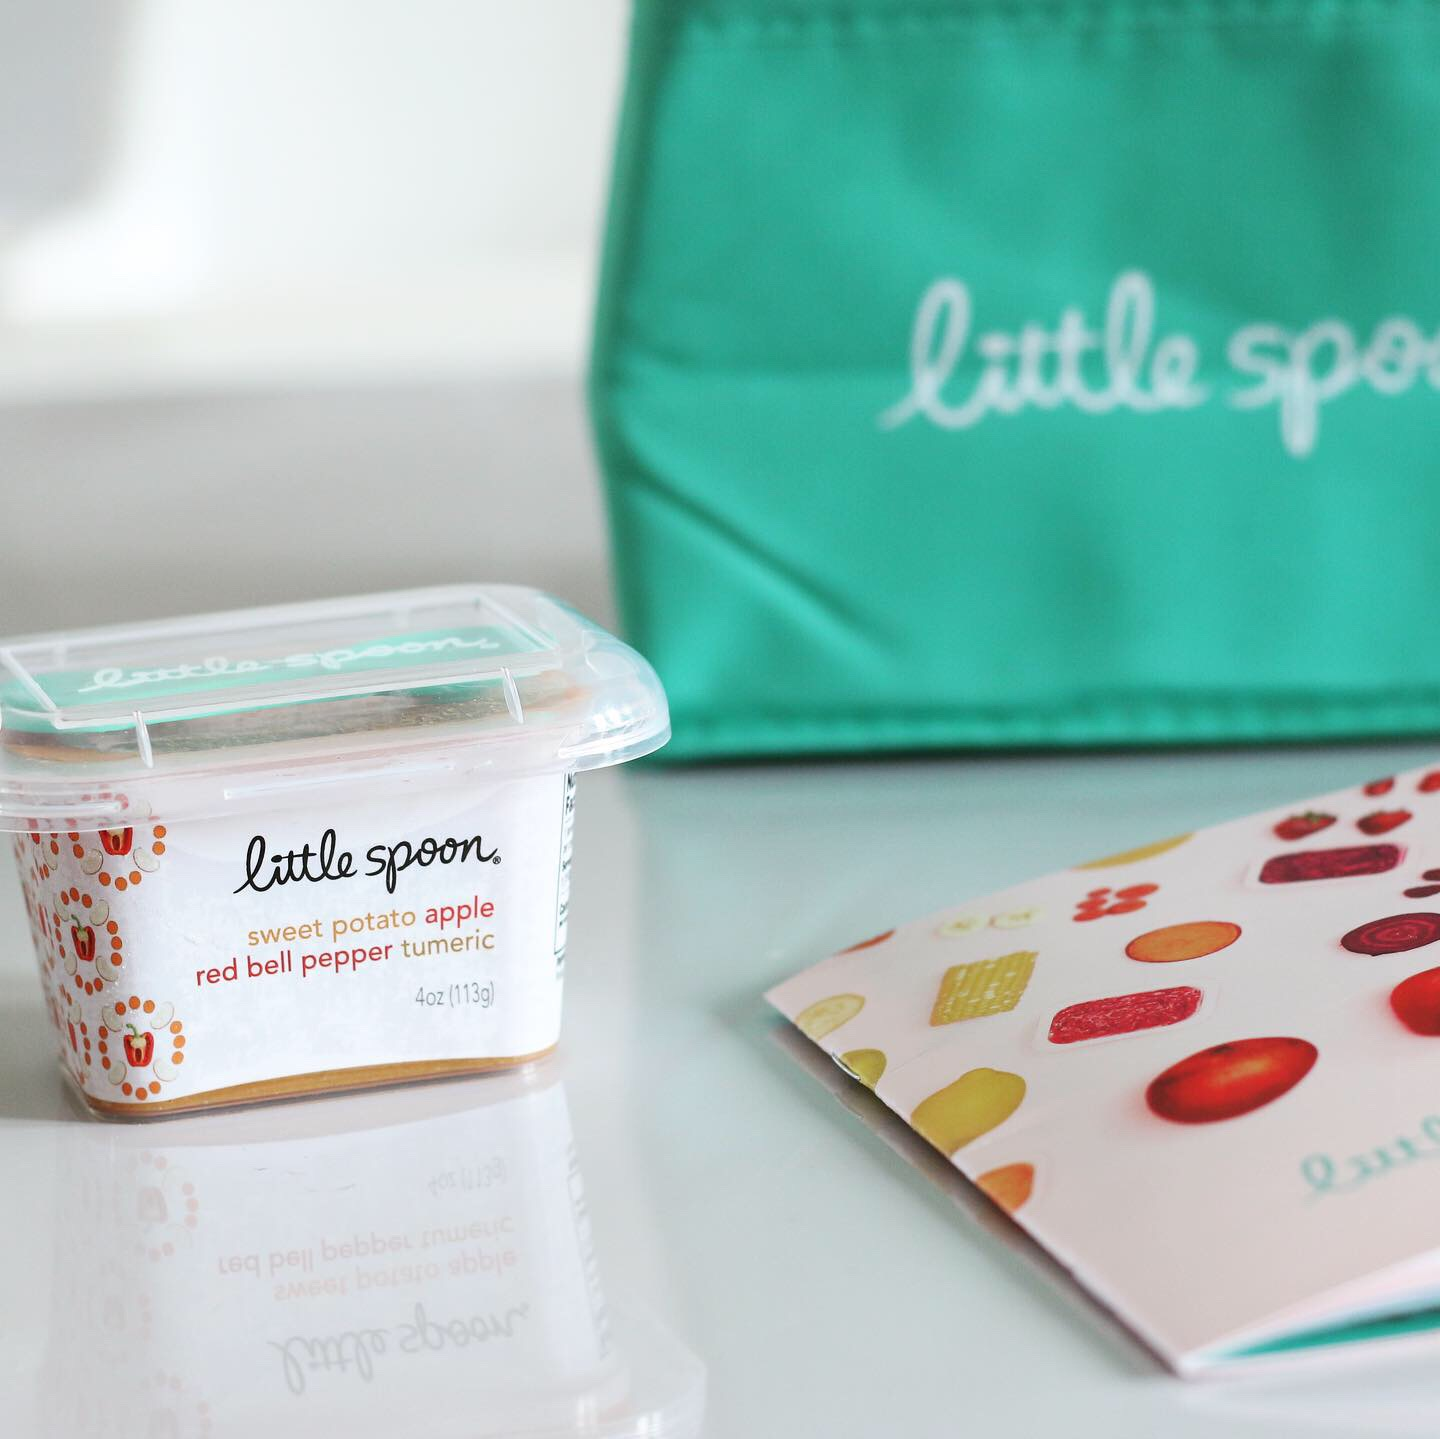 Little-Spoon-Organic-Fresh-Baby-Food-Vivi-Brizuela